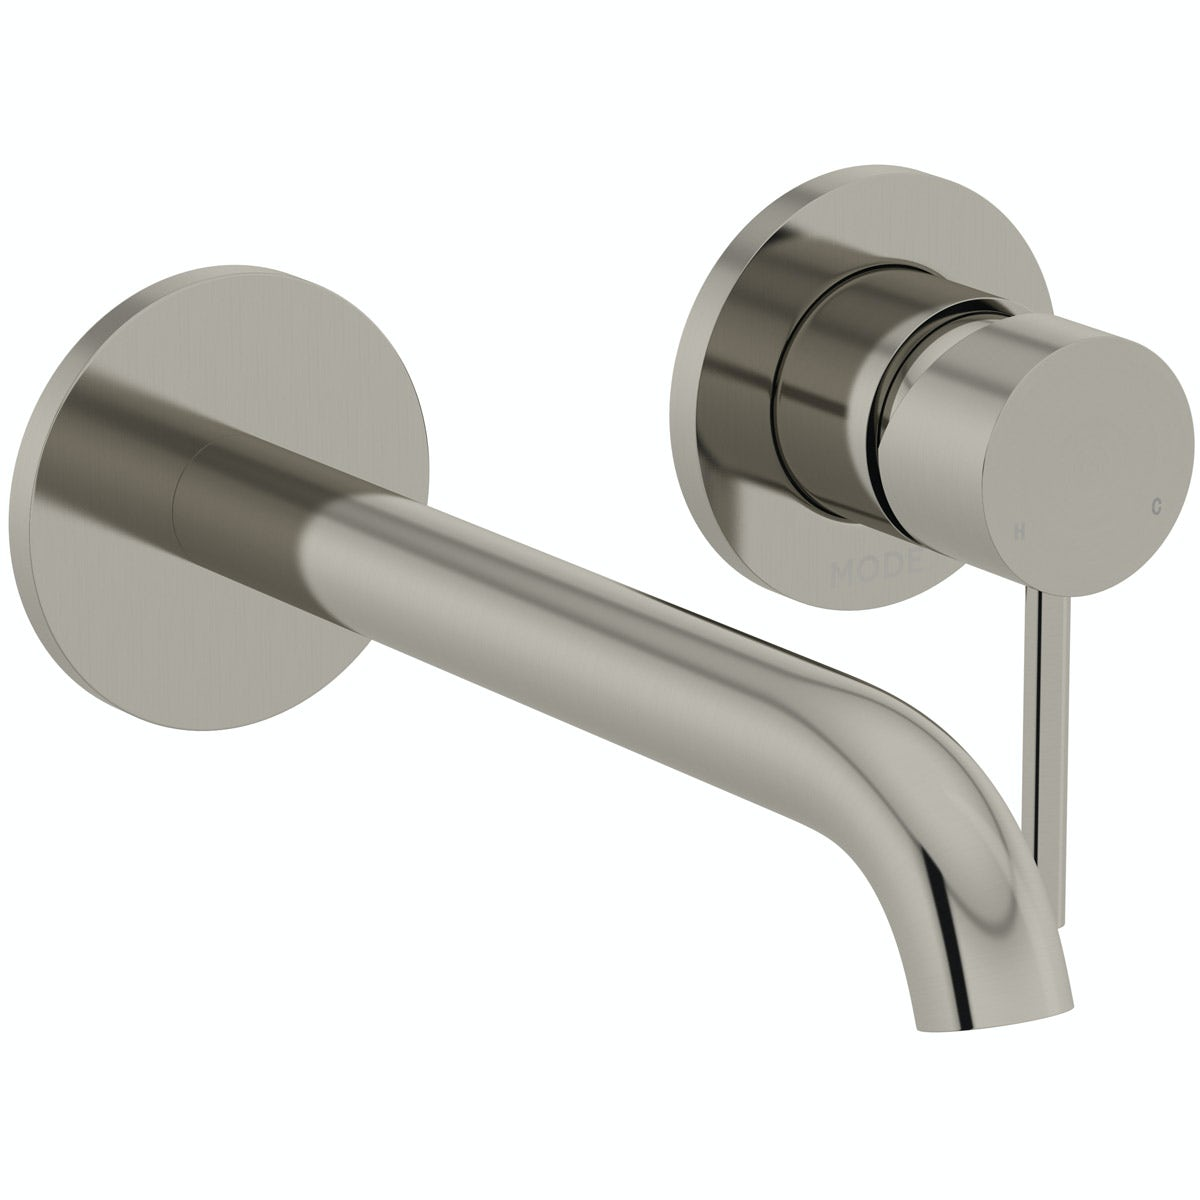 Mode Spencer round wall mounted brushed nickel bath mixer tap